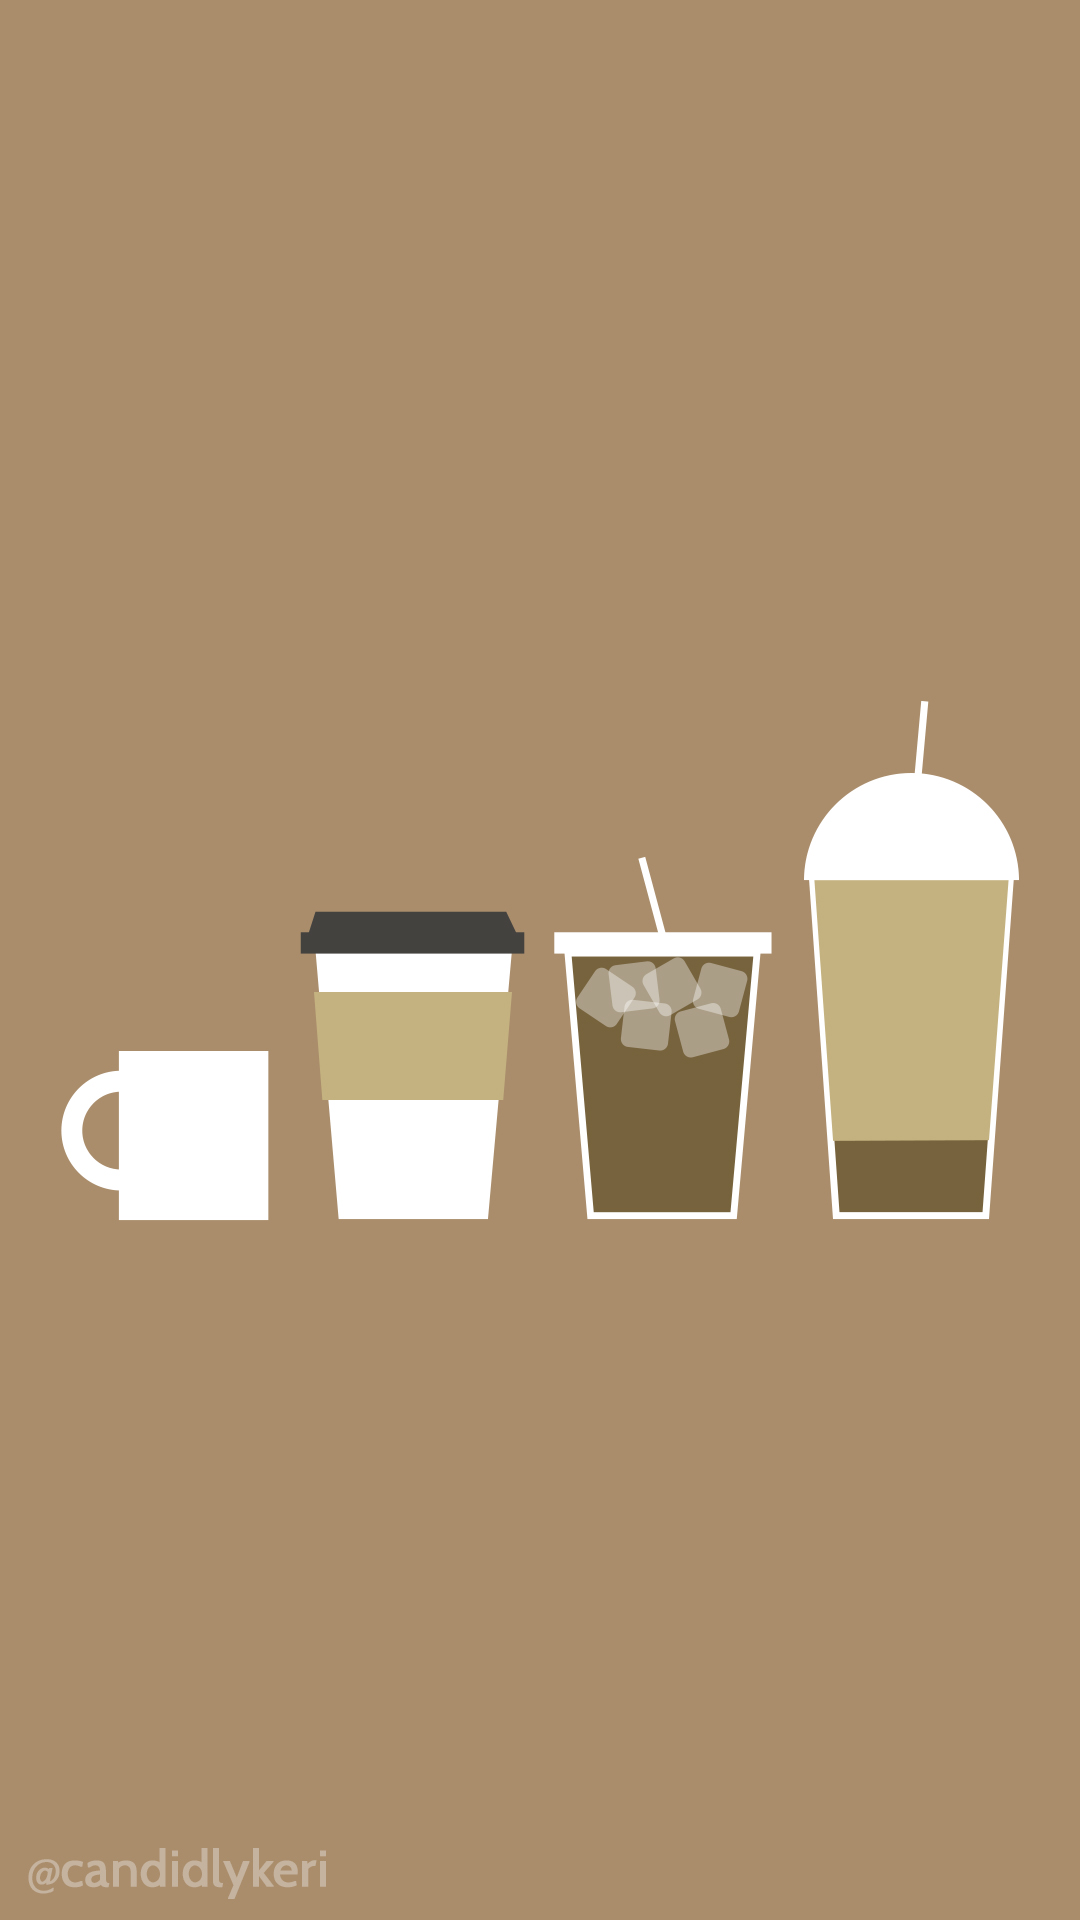 Cute-cartoon-coffee-latte-iced-coffee-you-can-download-for-free-on-the-blog-For-any-dev-wallpaper-wpc5803824